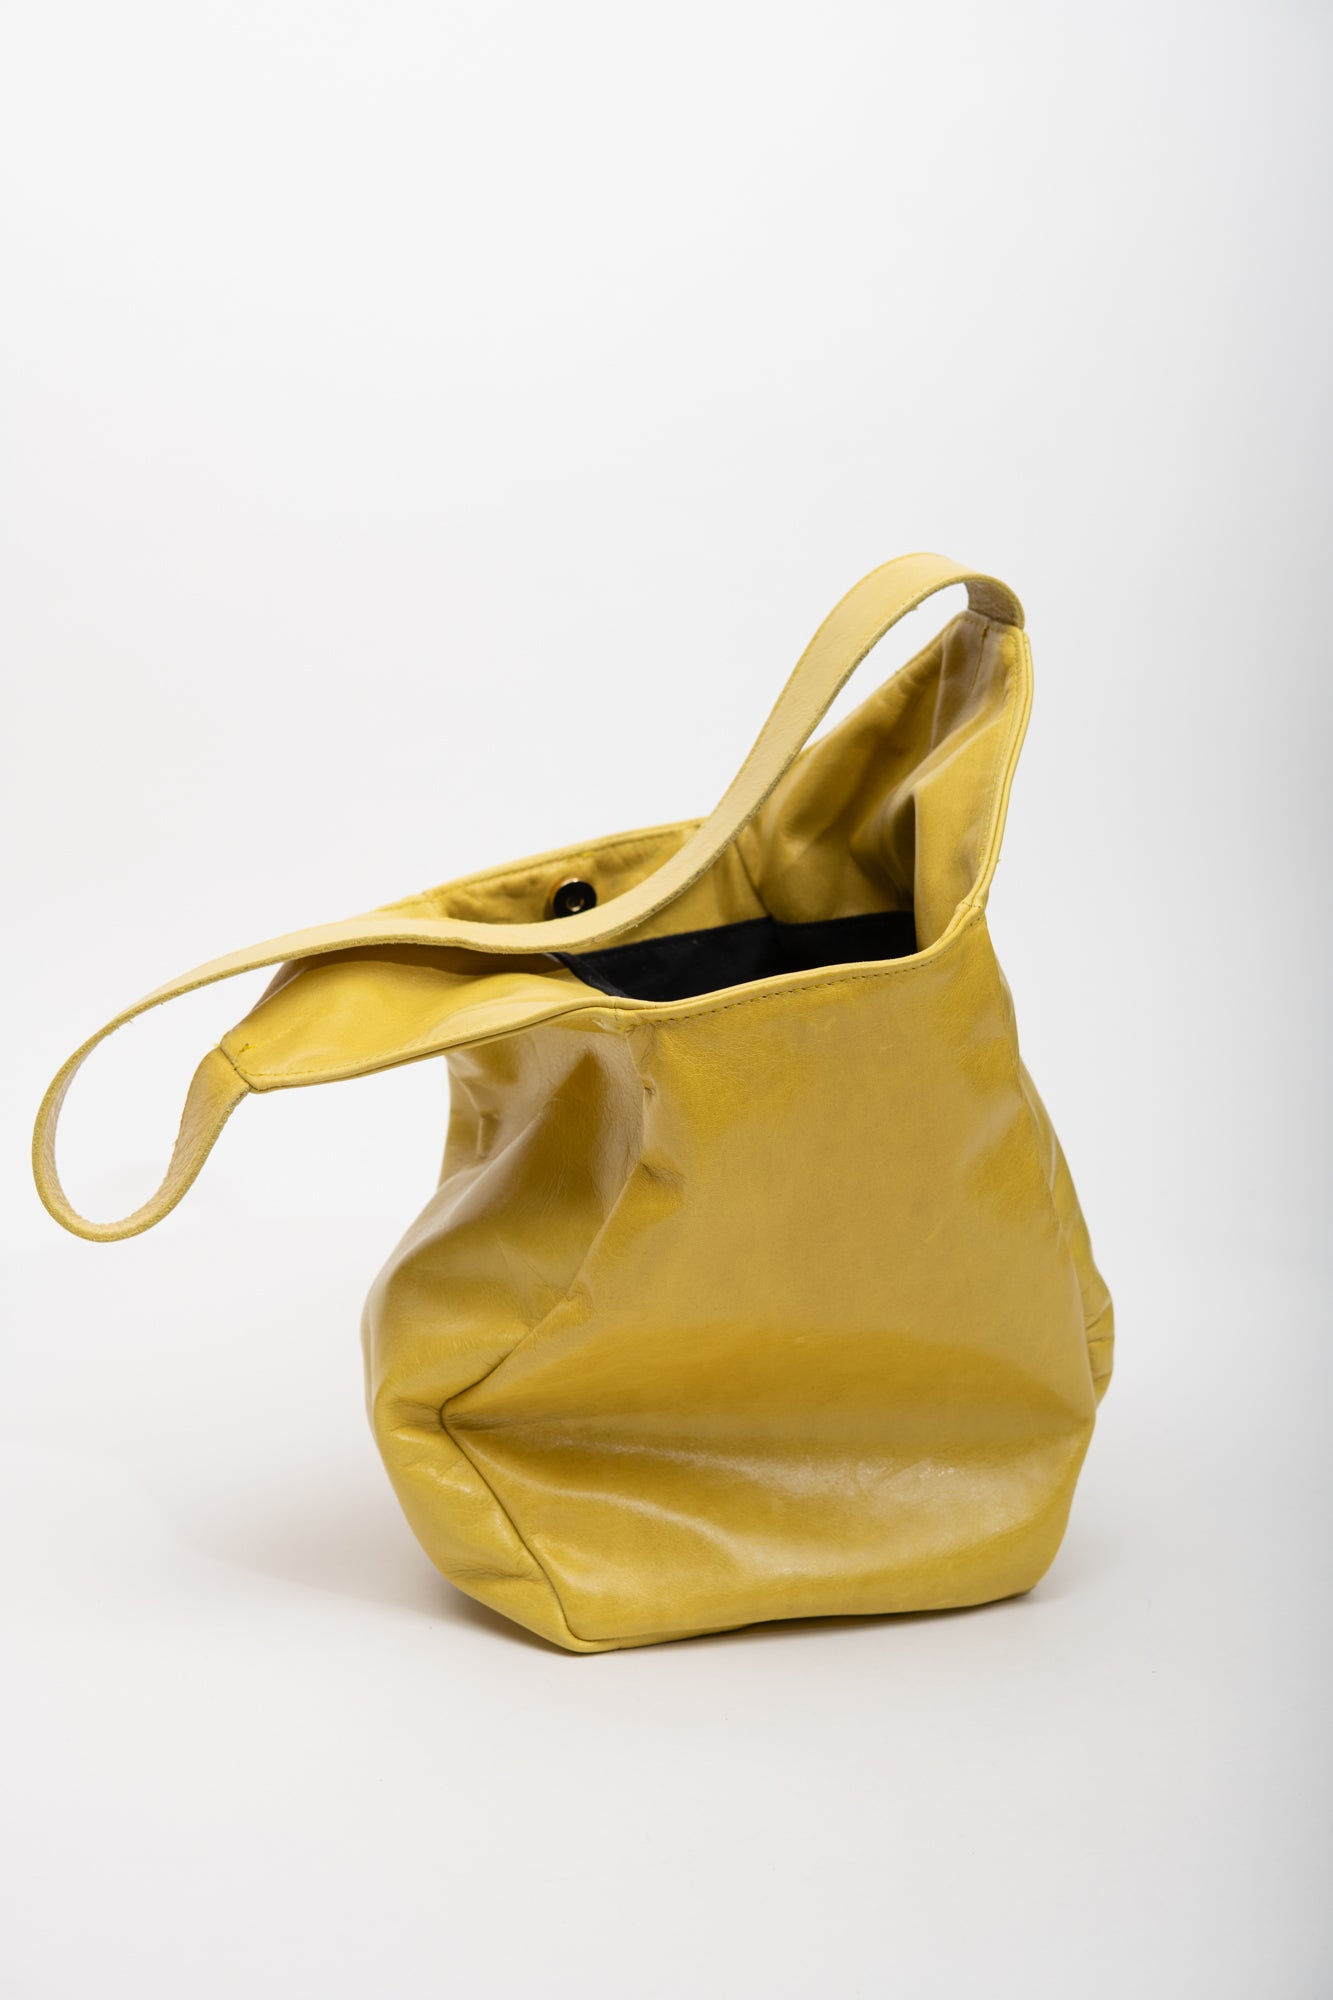 Veinage Geometrical yellow leather tote bag MONT-ROYAL model